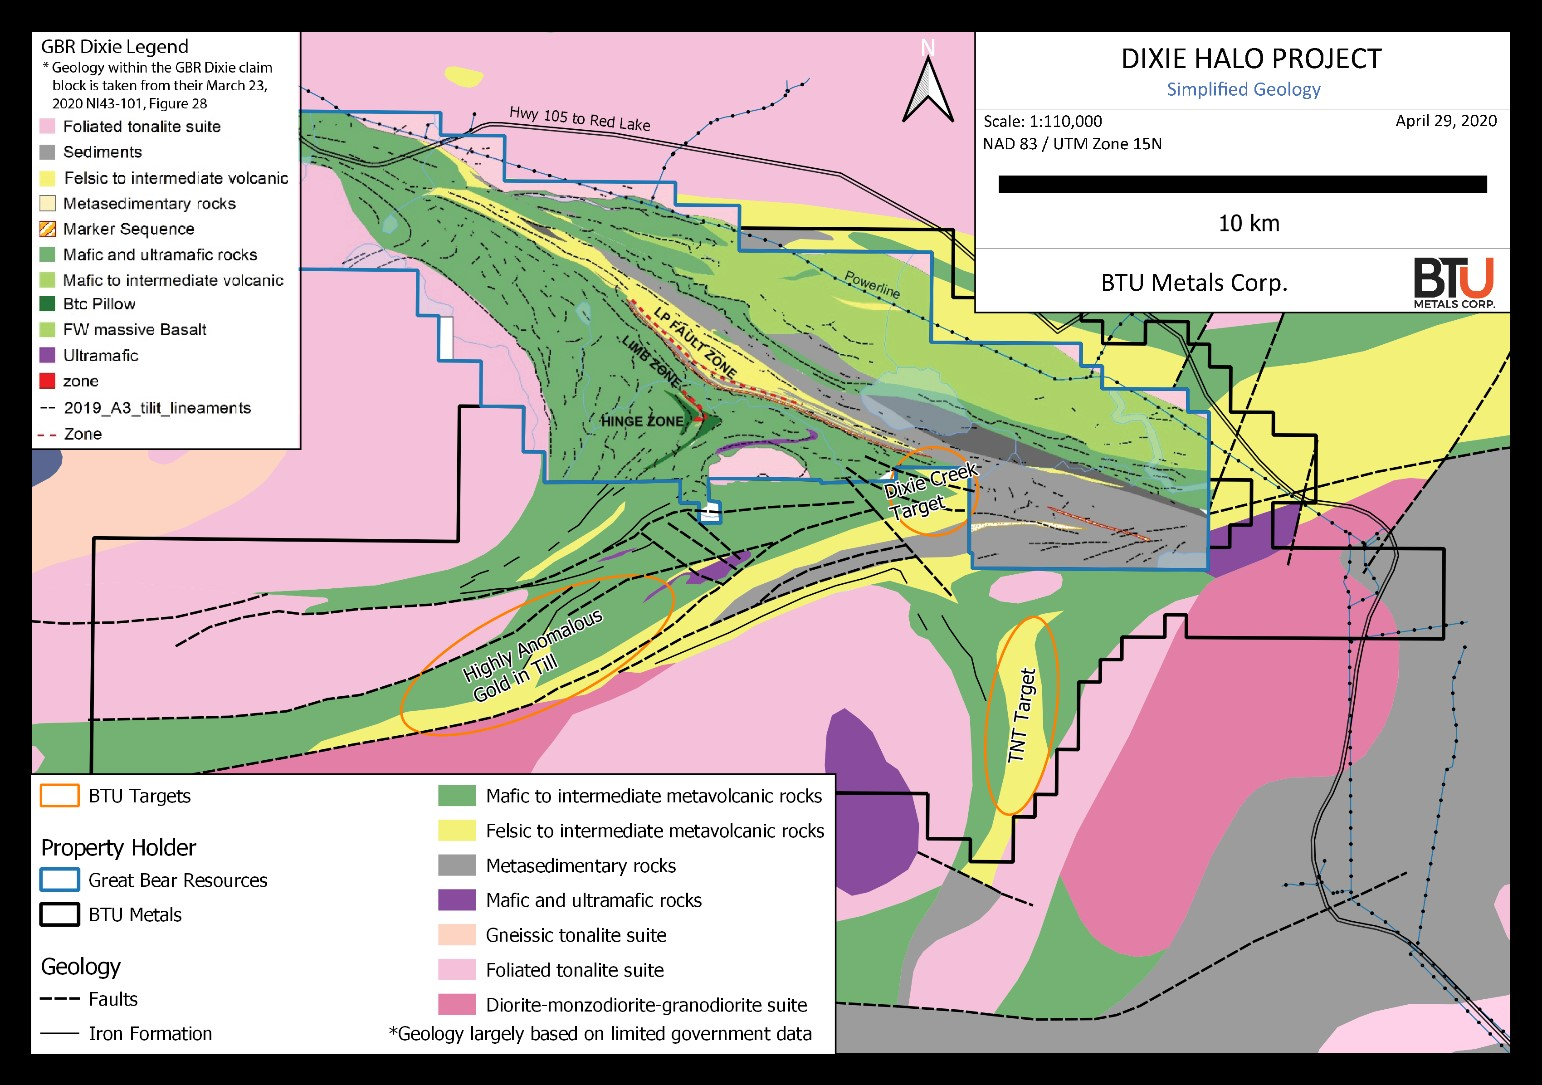 Figure 1: Geological map of BTU Metals' Dixie Halo property and Great Bear Resources' Dixie property